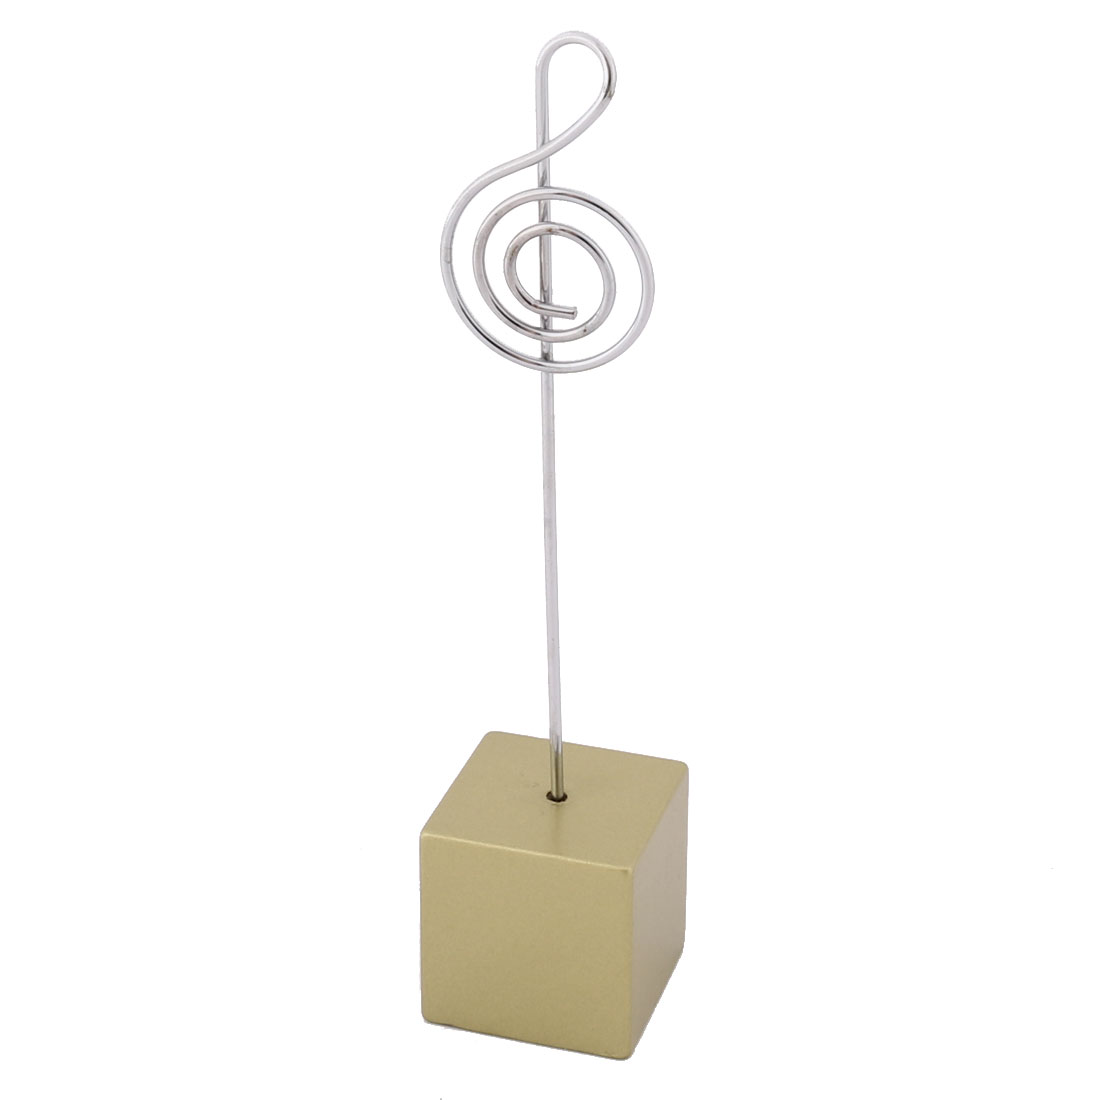 Household Office Resin Musical Note Shaped Table Decor Photo Memo Clip Gold Tone